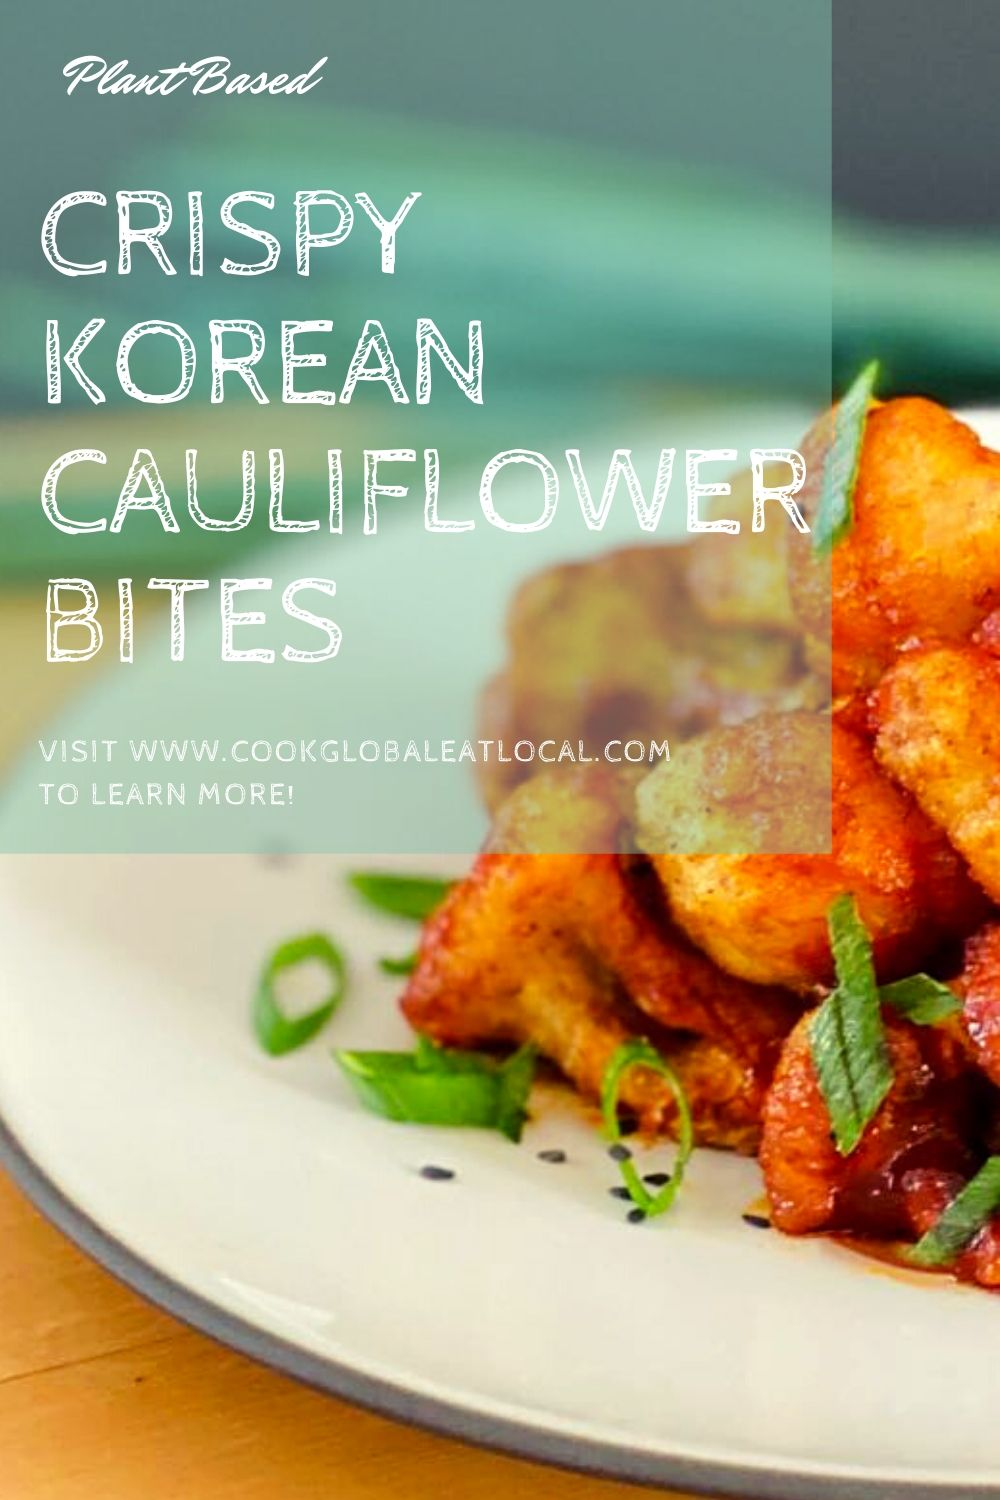 Crispy Korean Cauliflower Bites | cookglobaleatlocal.com